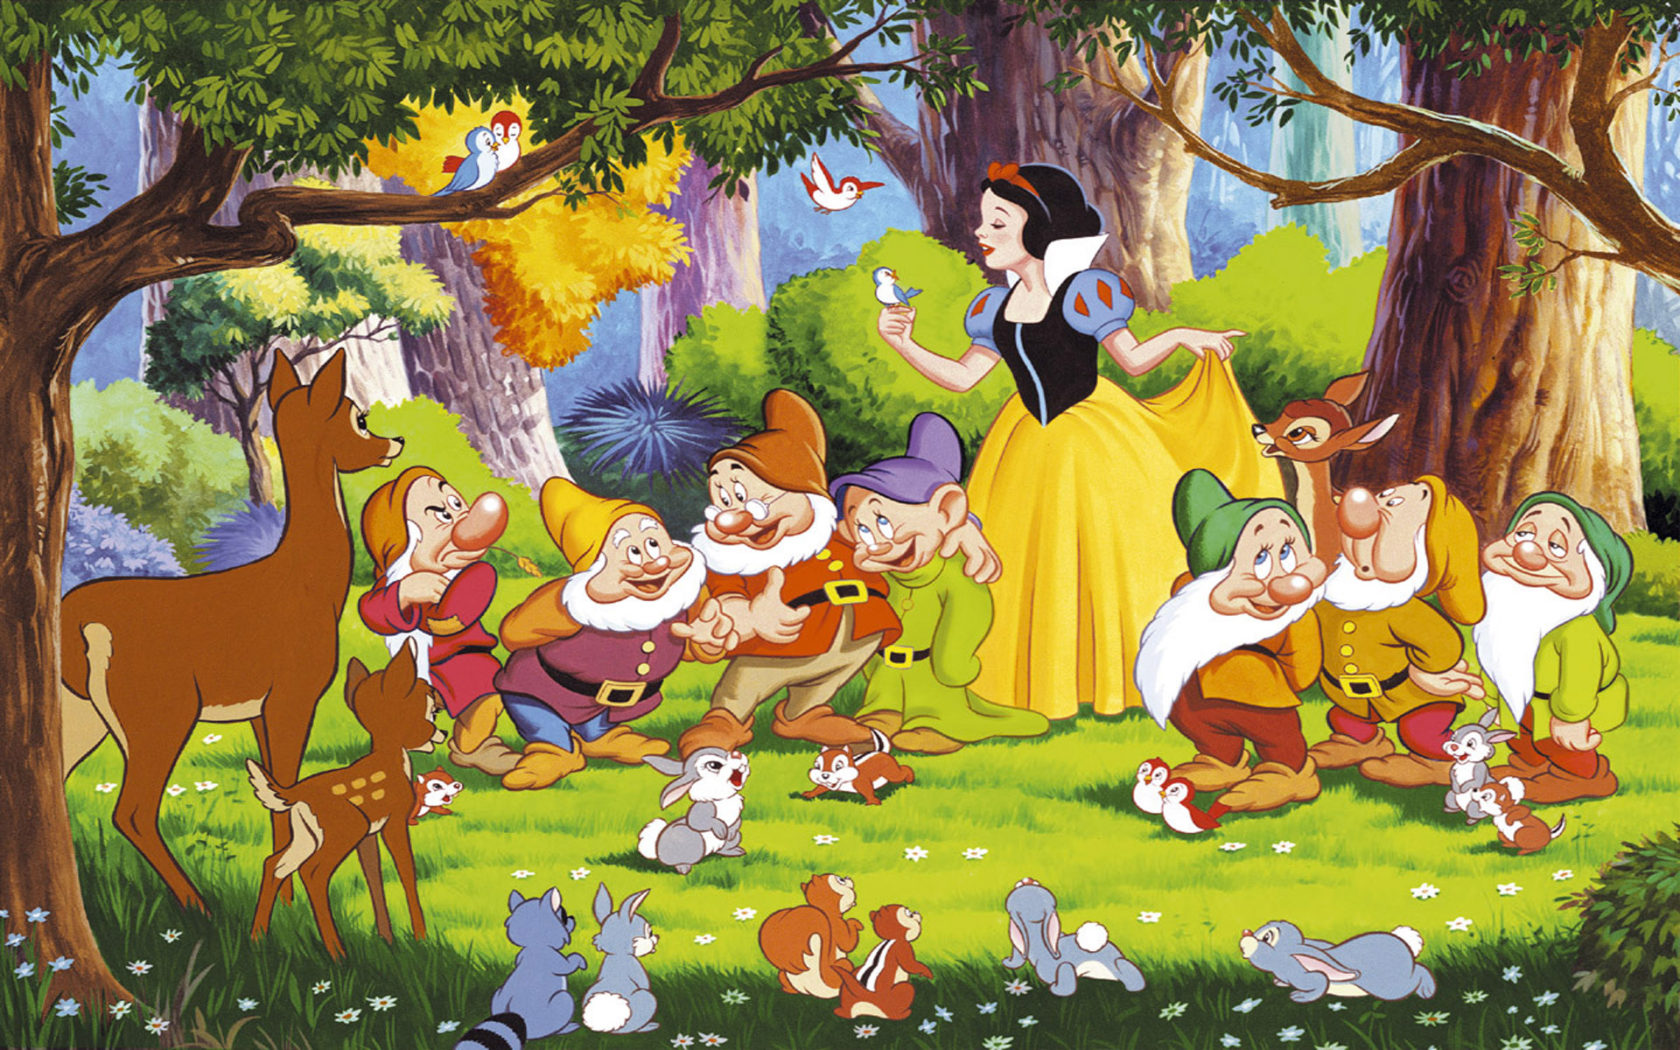 Cute Wallpaper Download For Mobile Snow White Seven Dwarfs Bambi And The Animals From The